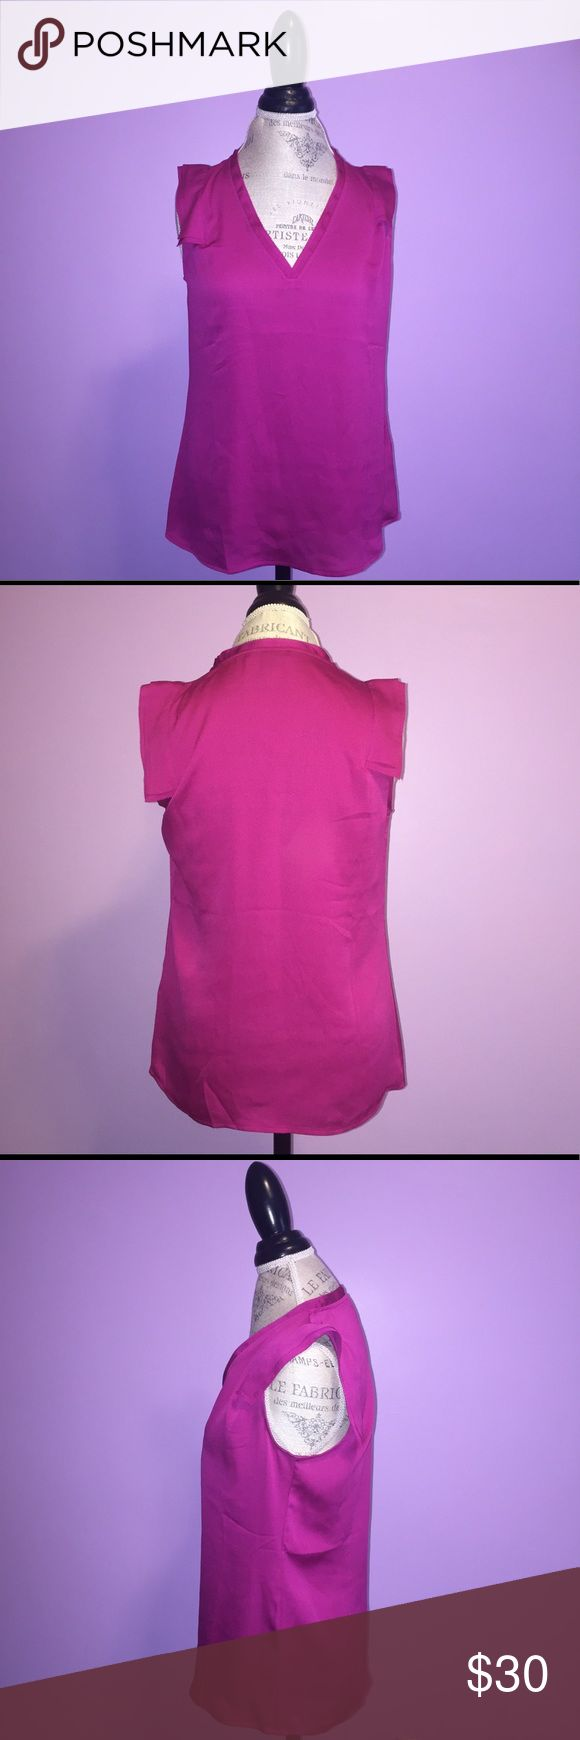 Banana Republic Top Banana Republic shell top in purple. Lightweight and perfect for spring and summer. Can be dressed up for the office or casual for the weekends. Banana Republic Tops